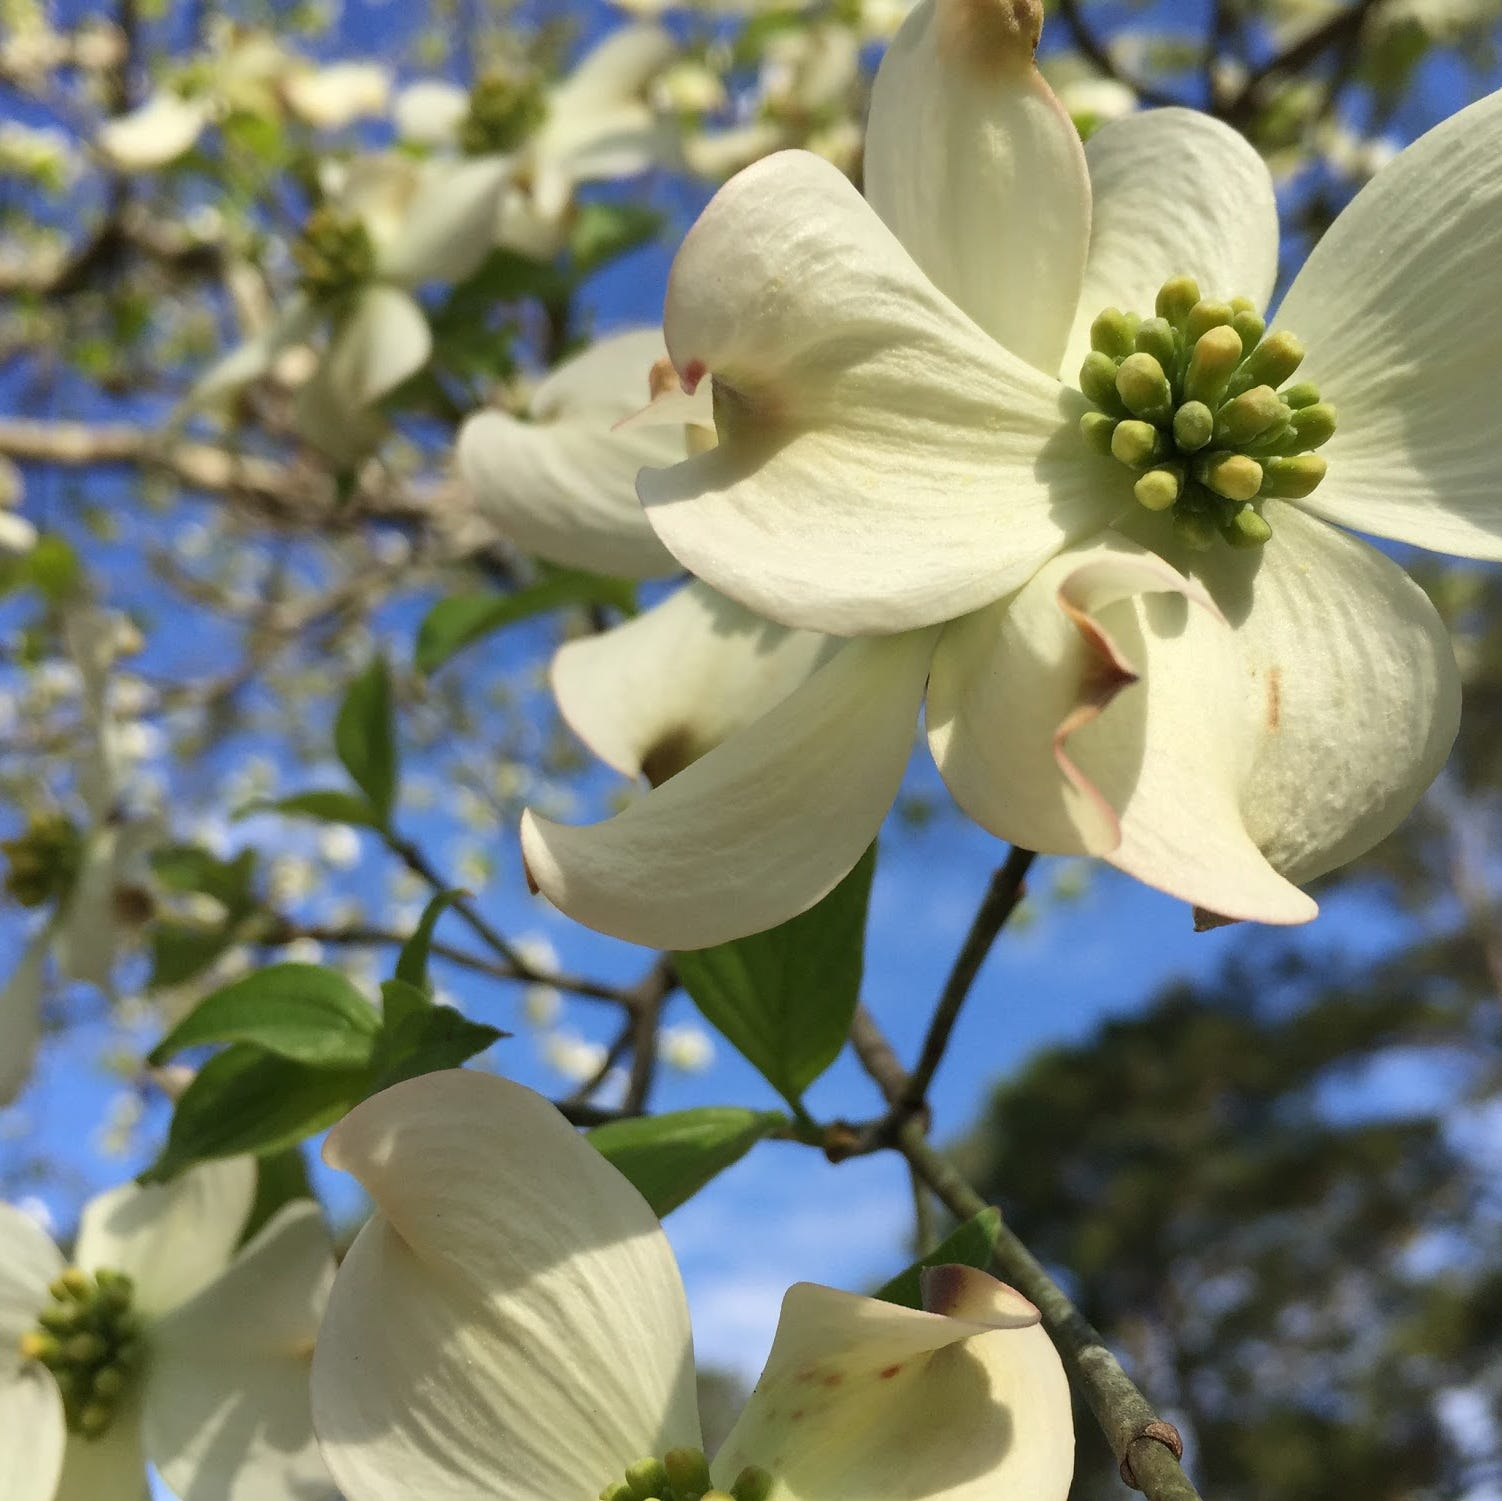 Flowering dogwood dreams can come true if the soil is right